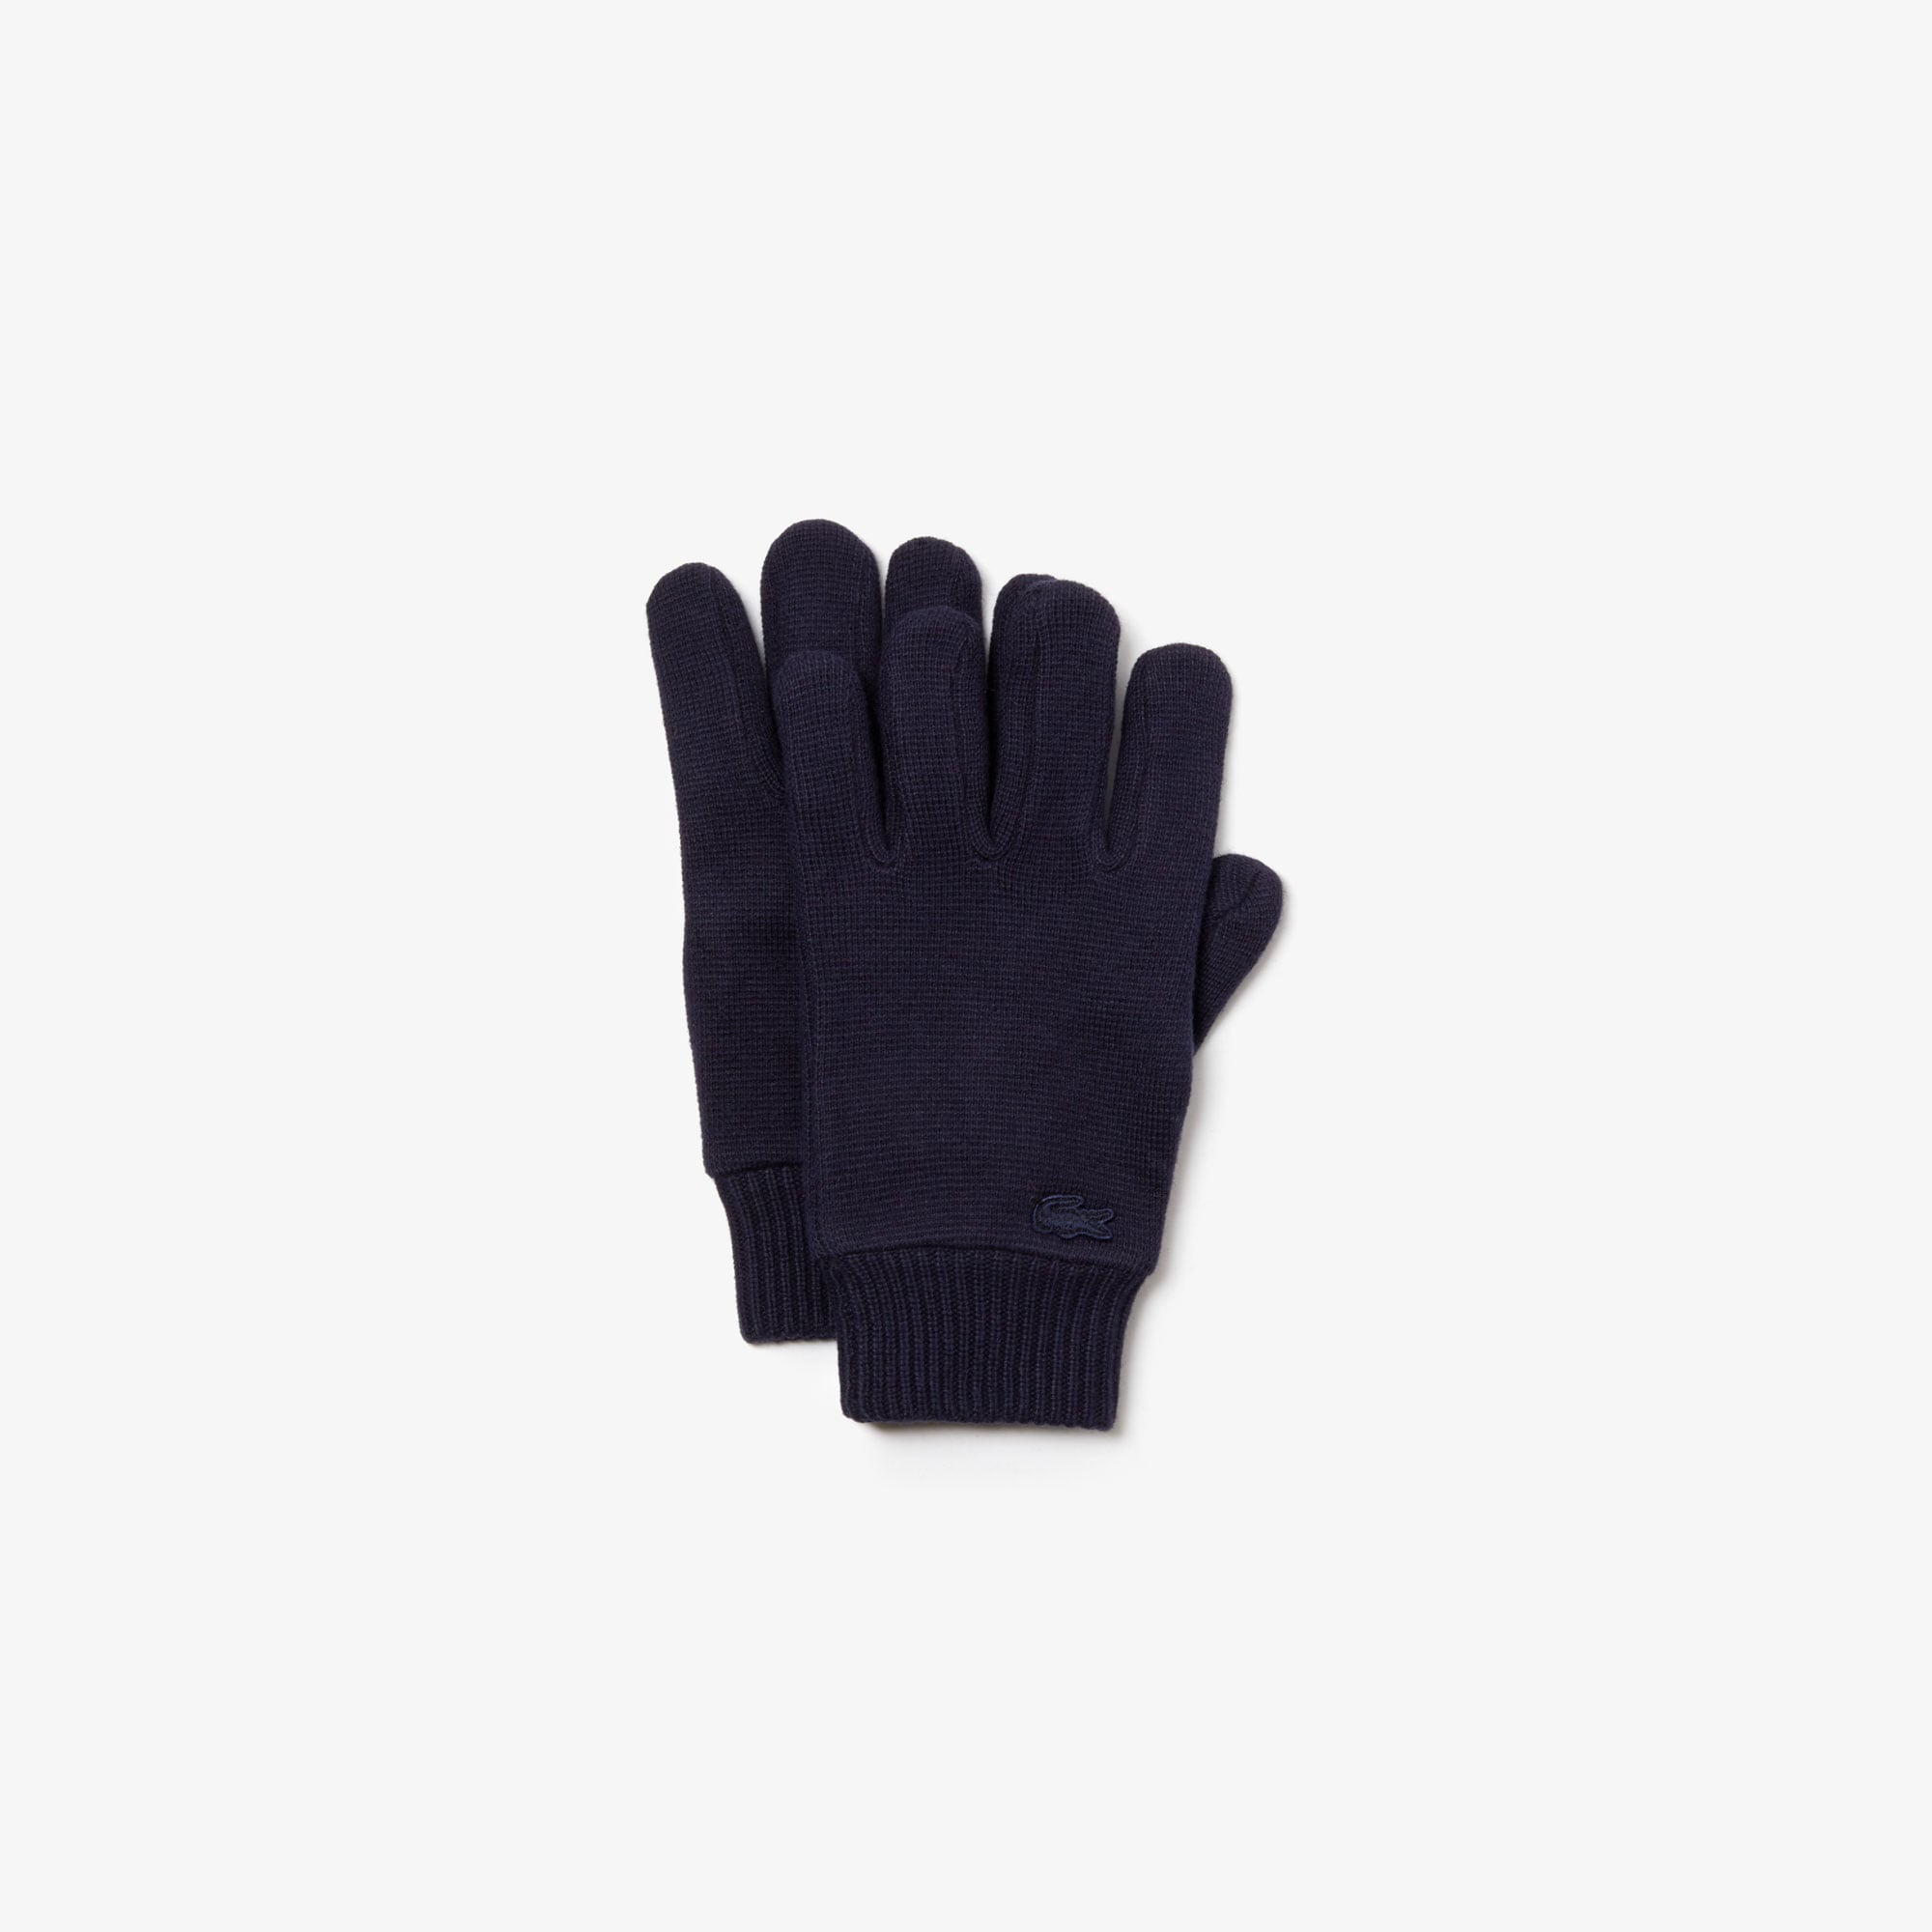 Men's Cotton And Cashmere Knit Gloves